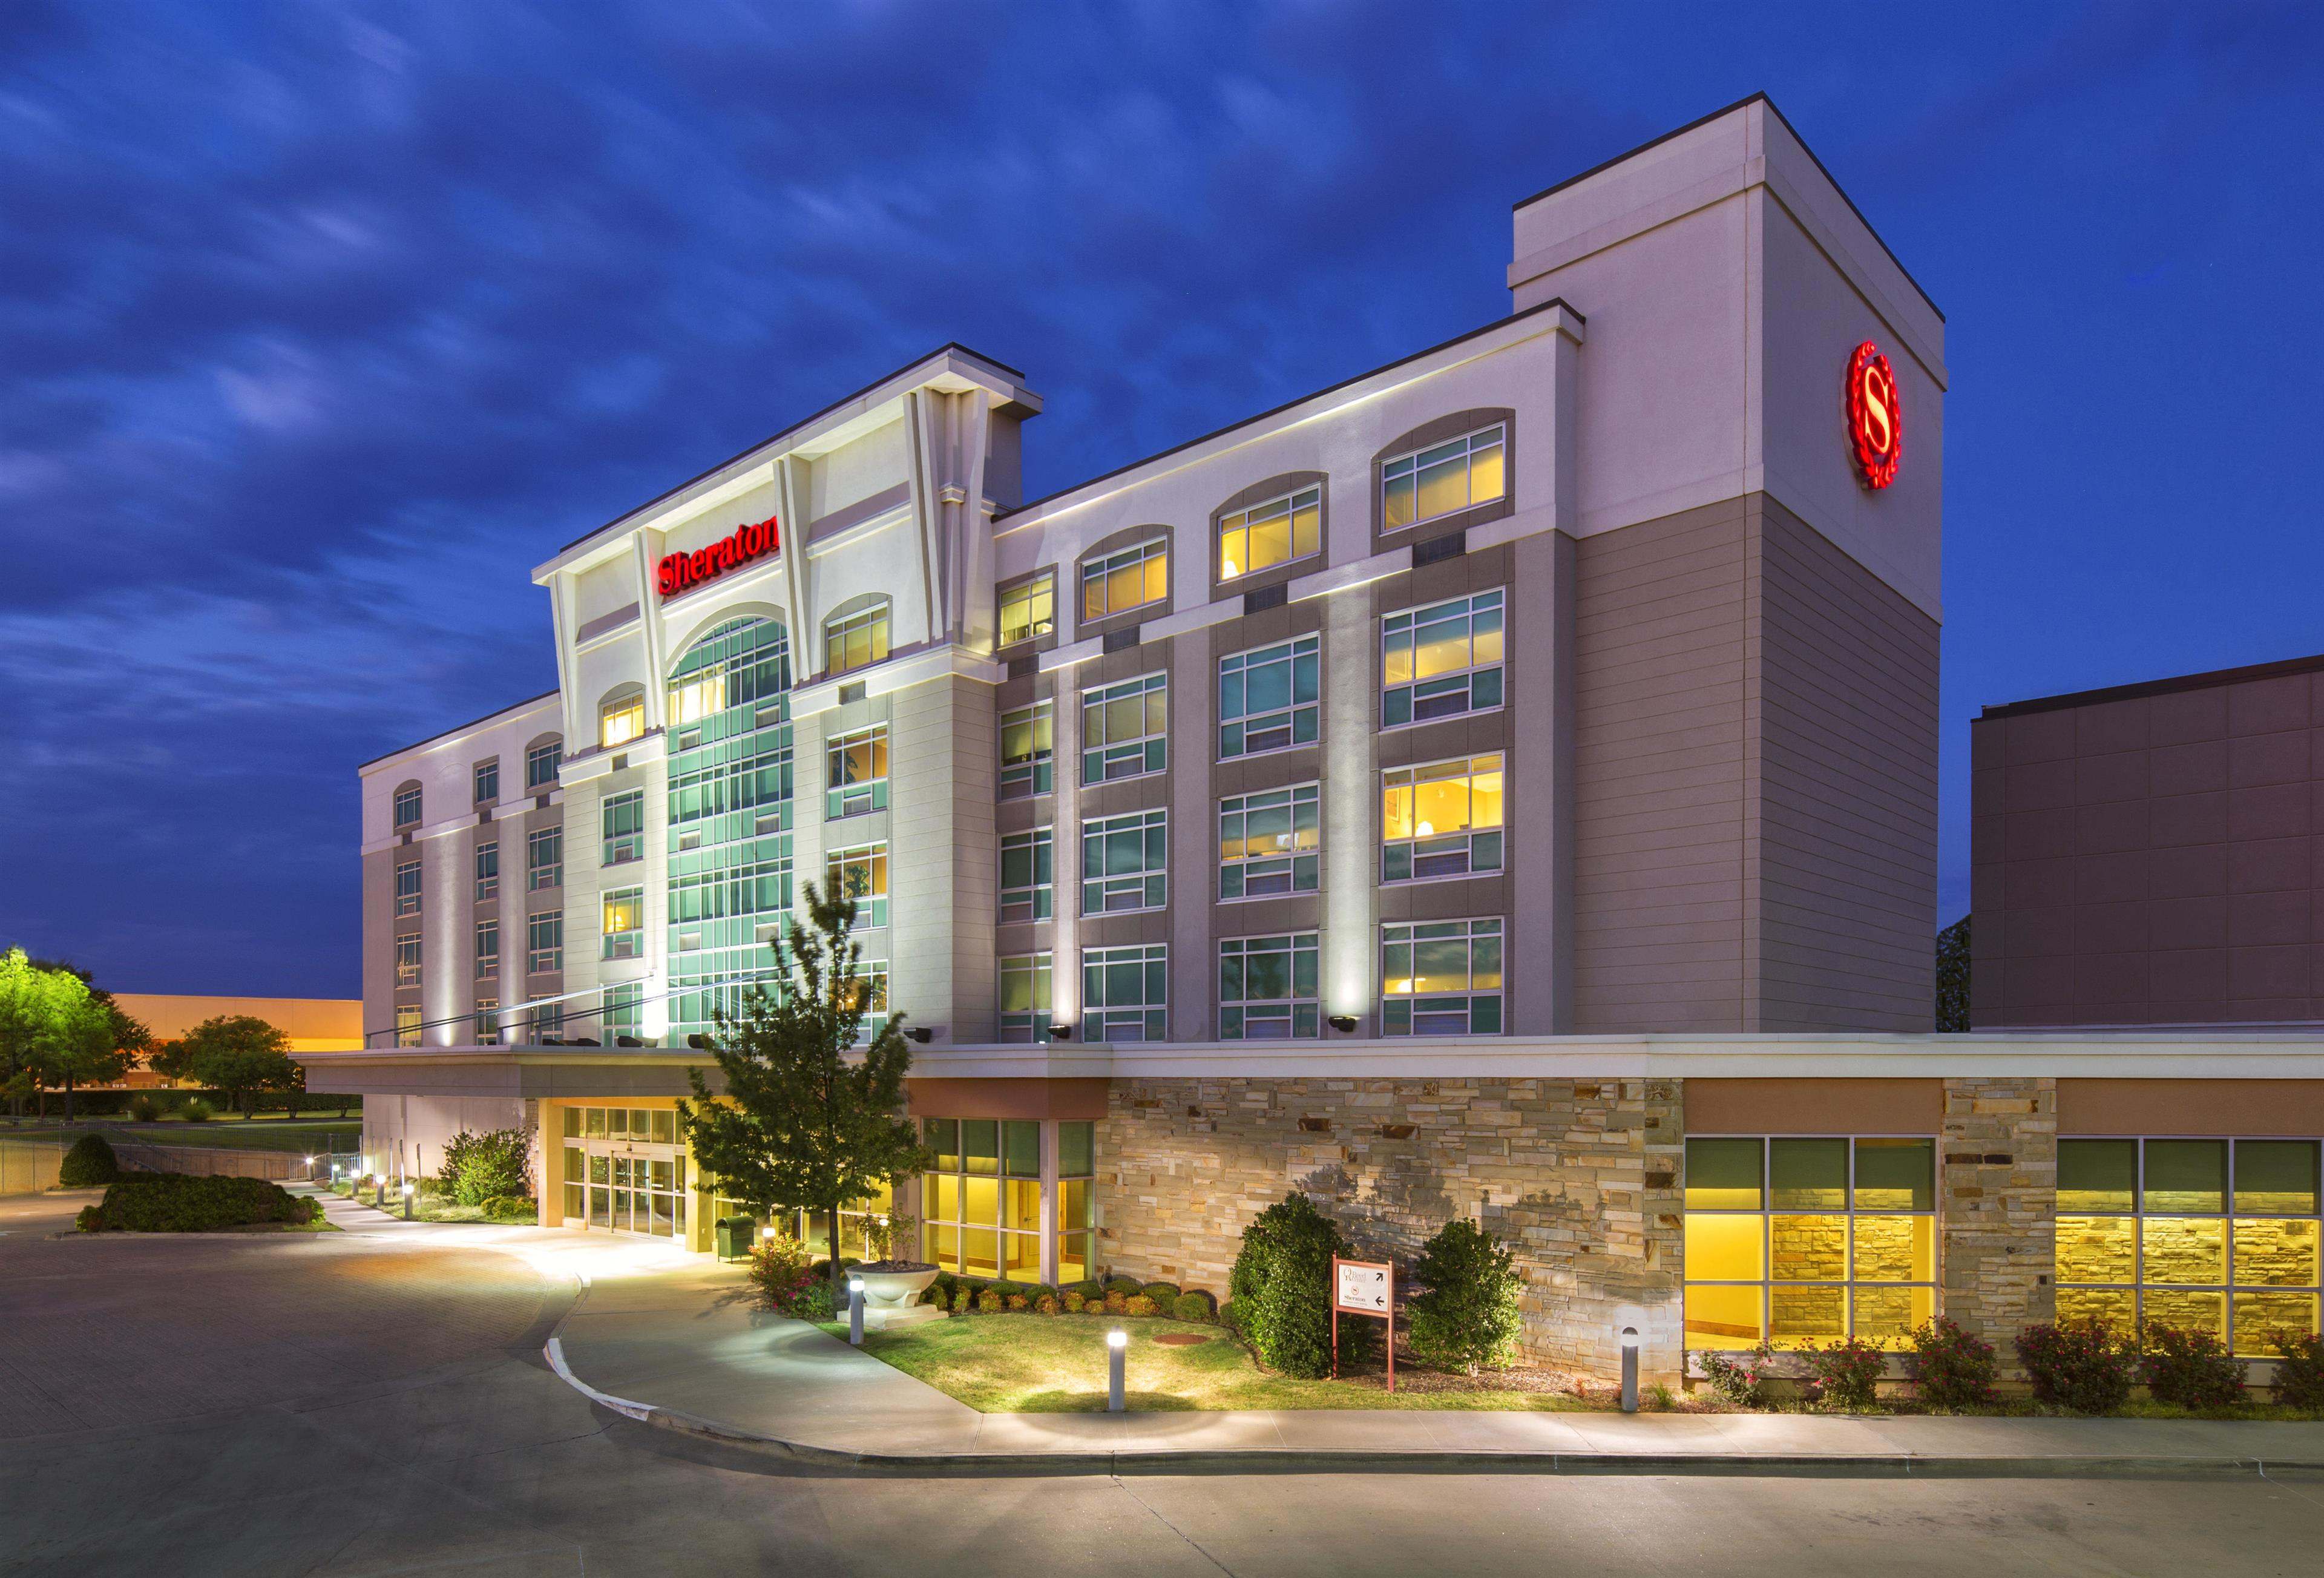 Sheraton Reed Center Midwest City